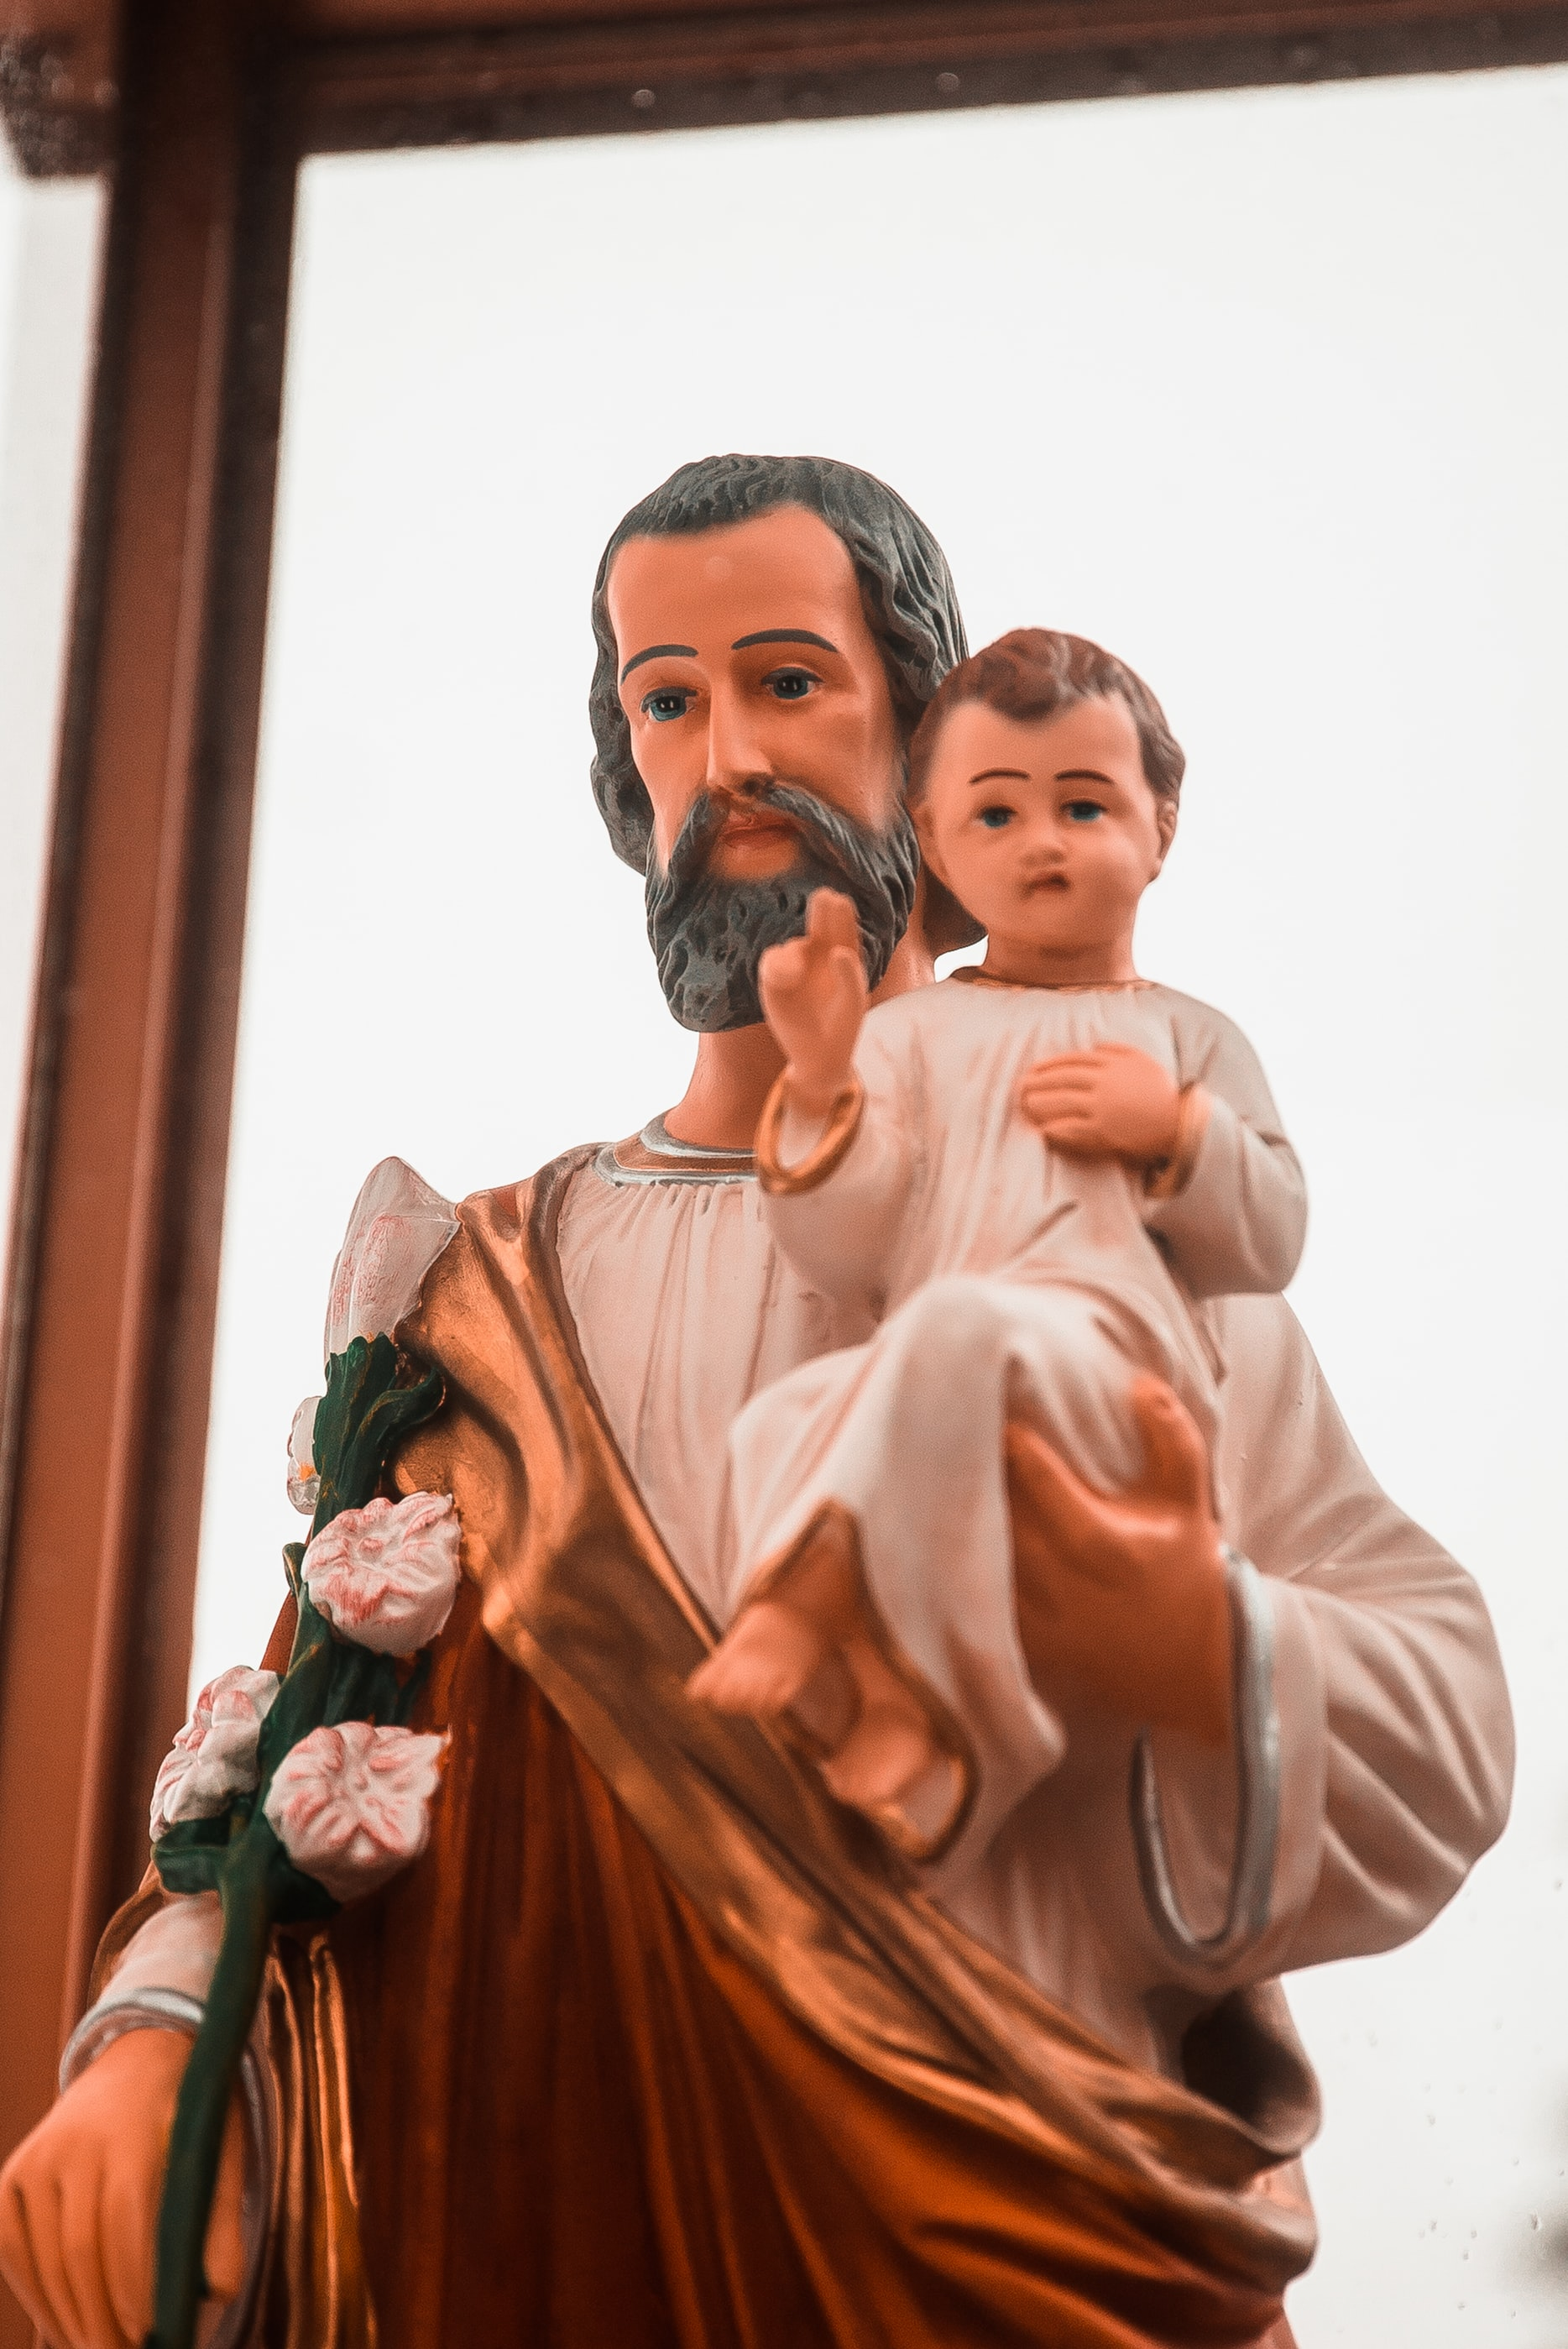 St. Joseph Formed Jesus as a Man